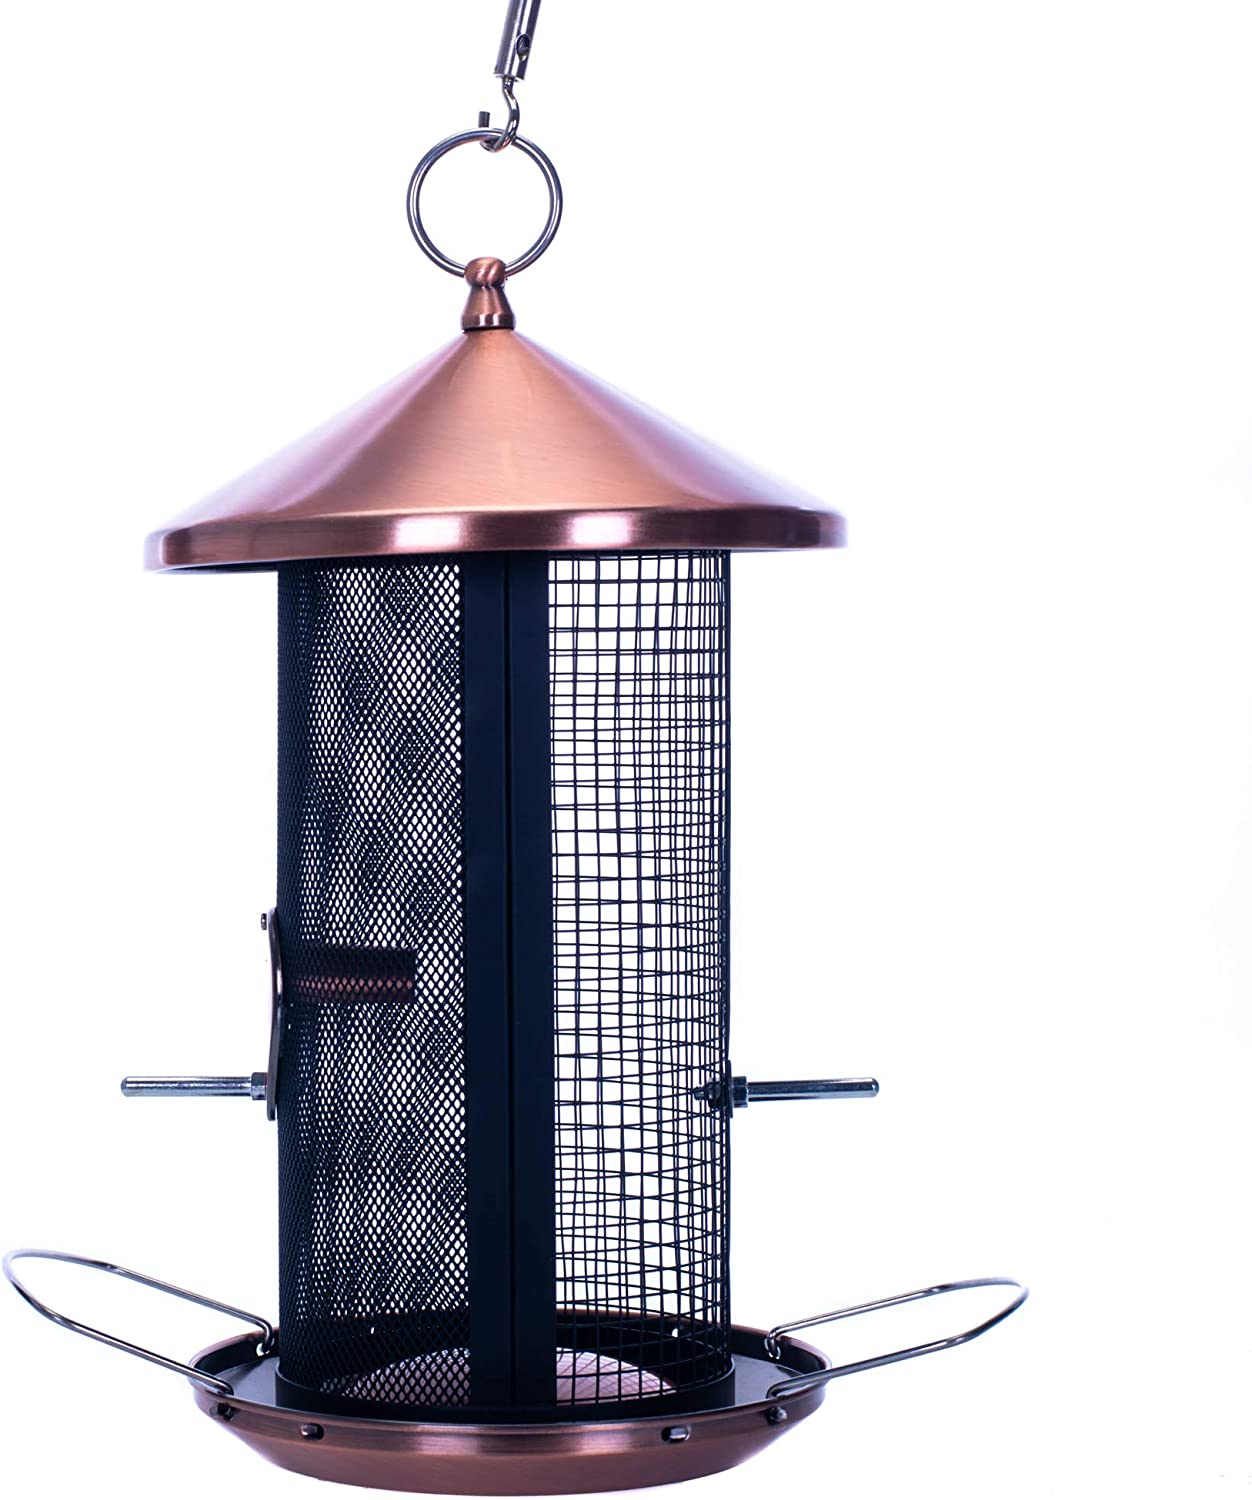 Cottage Garden 12 inch Copper Finish Heavy Duty Mesh Metal 3 Lb. Dual Nut and Seed Bird Feeder